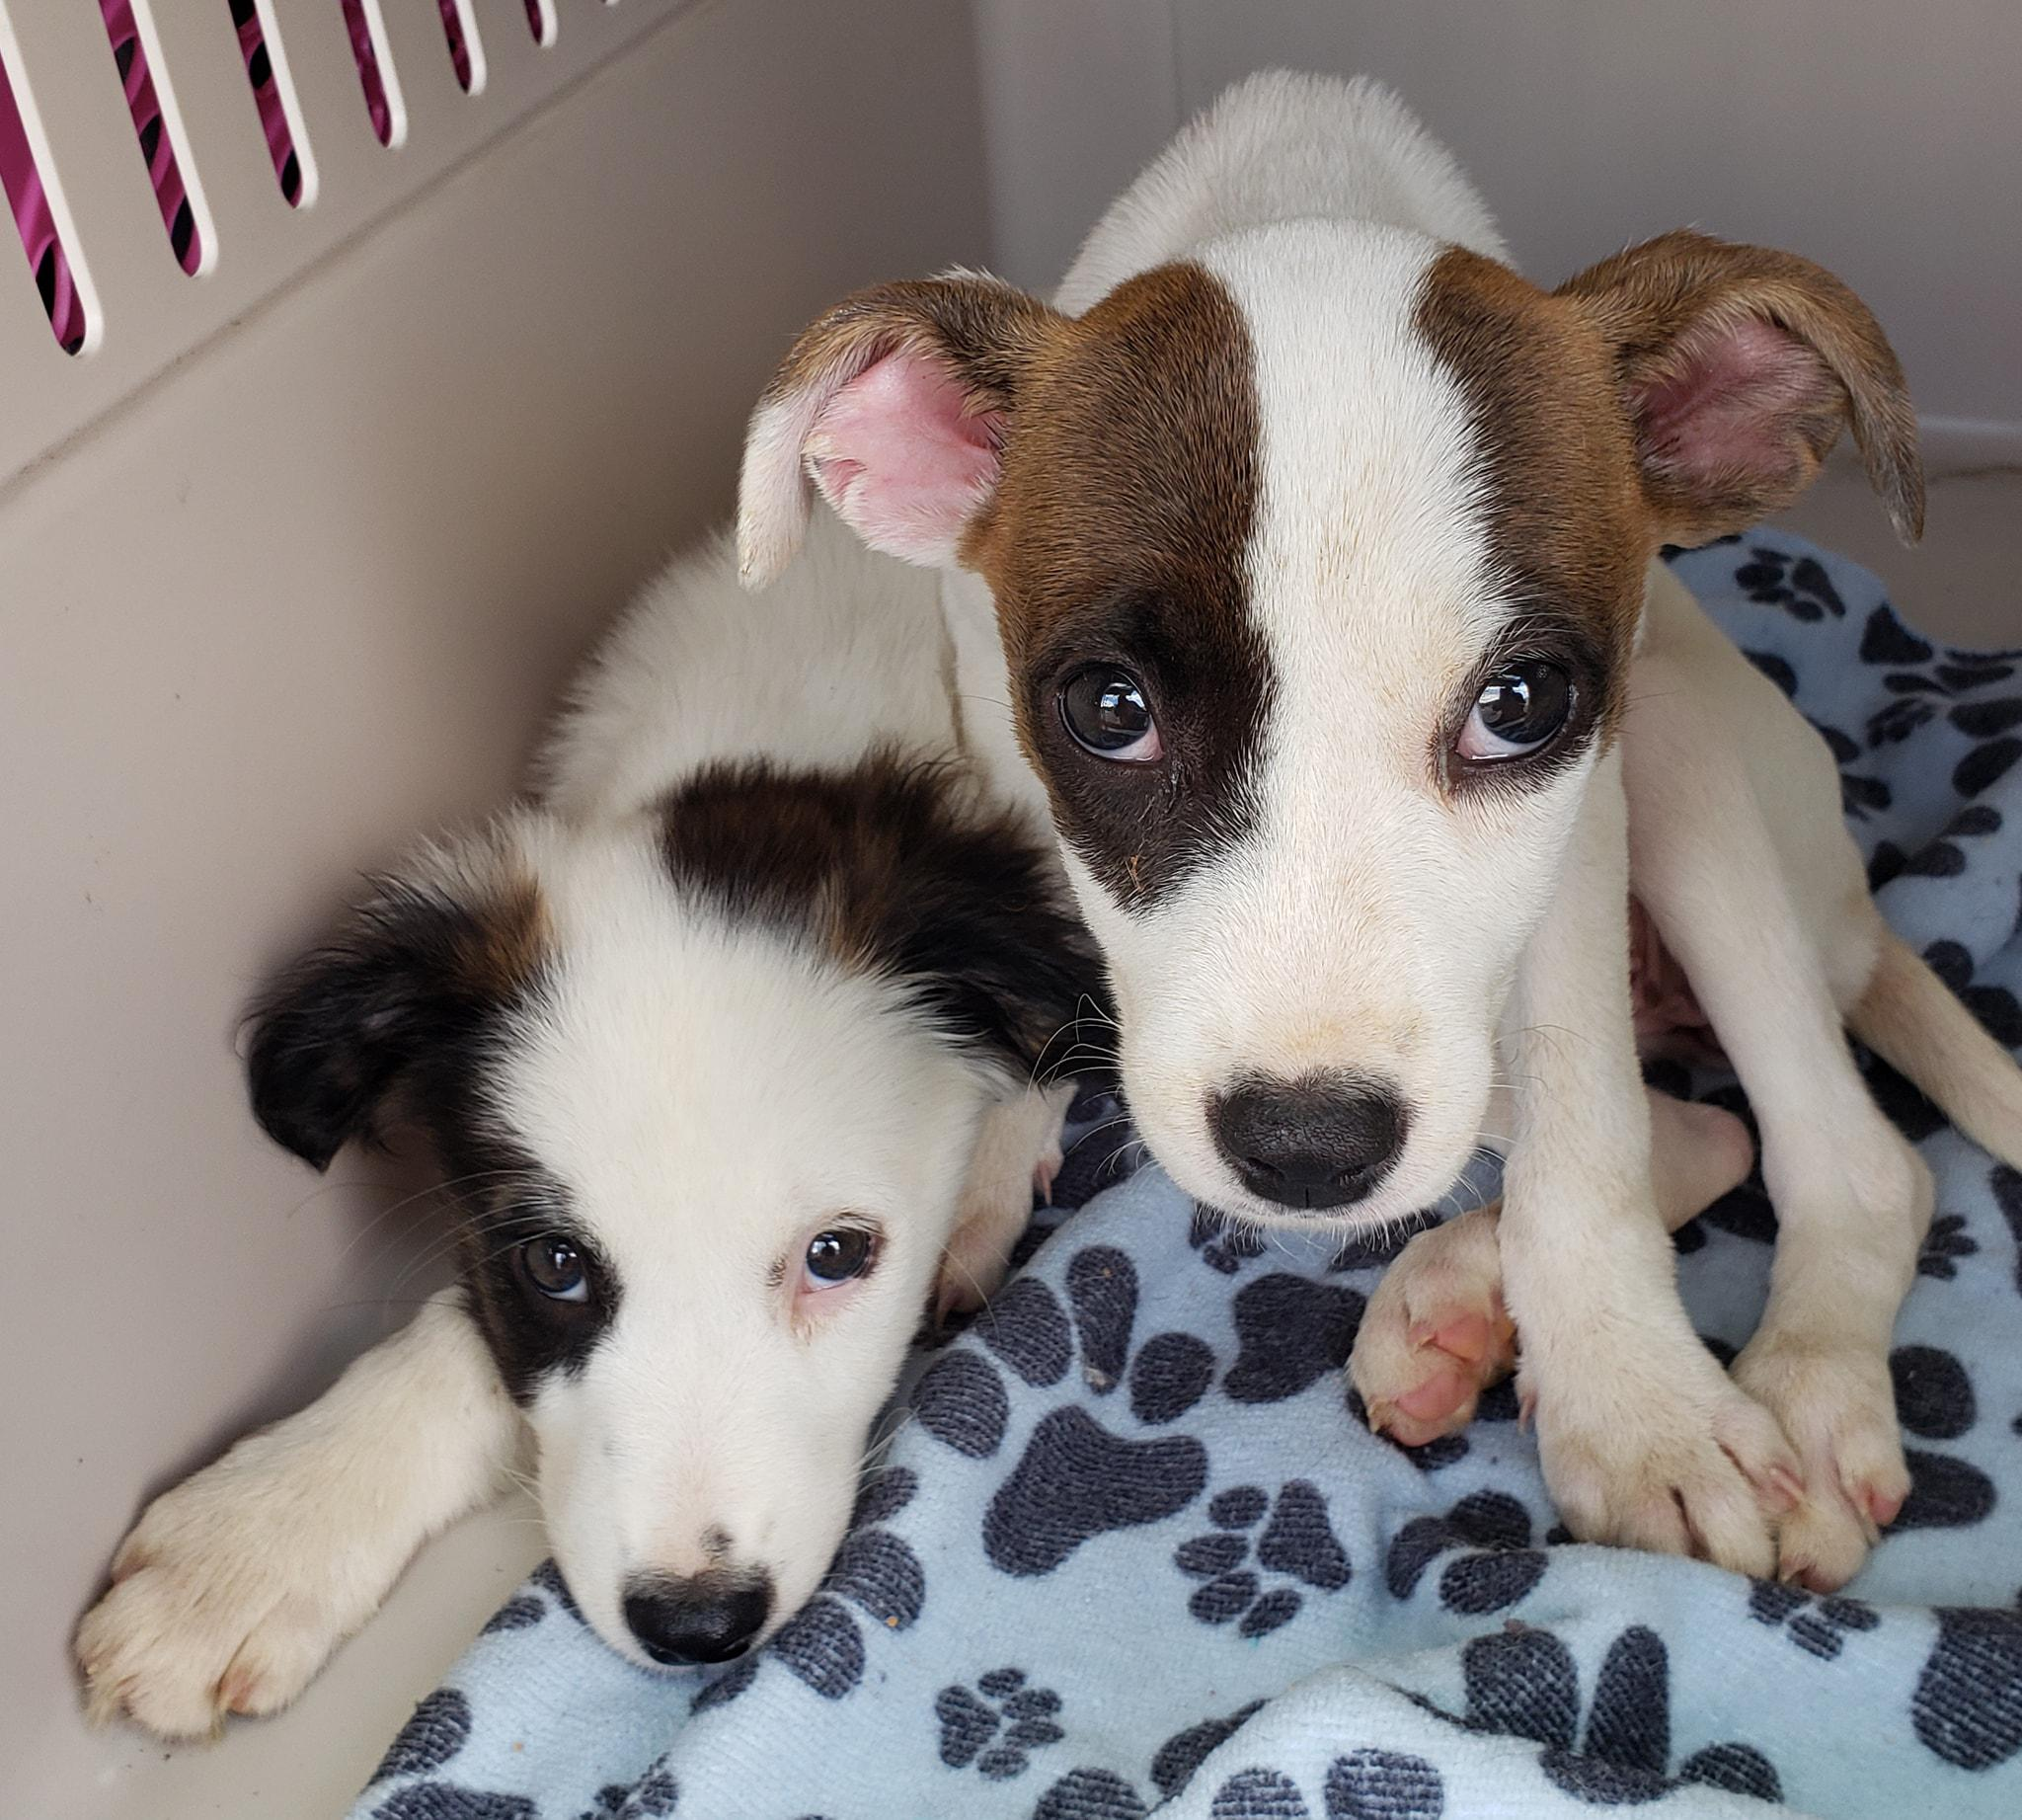 Animal rescue group probed after puppies become sick - NewsTimes